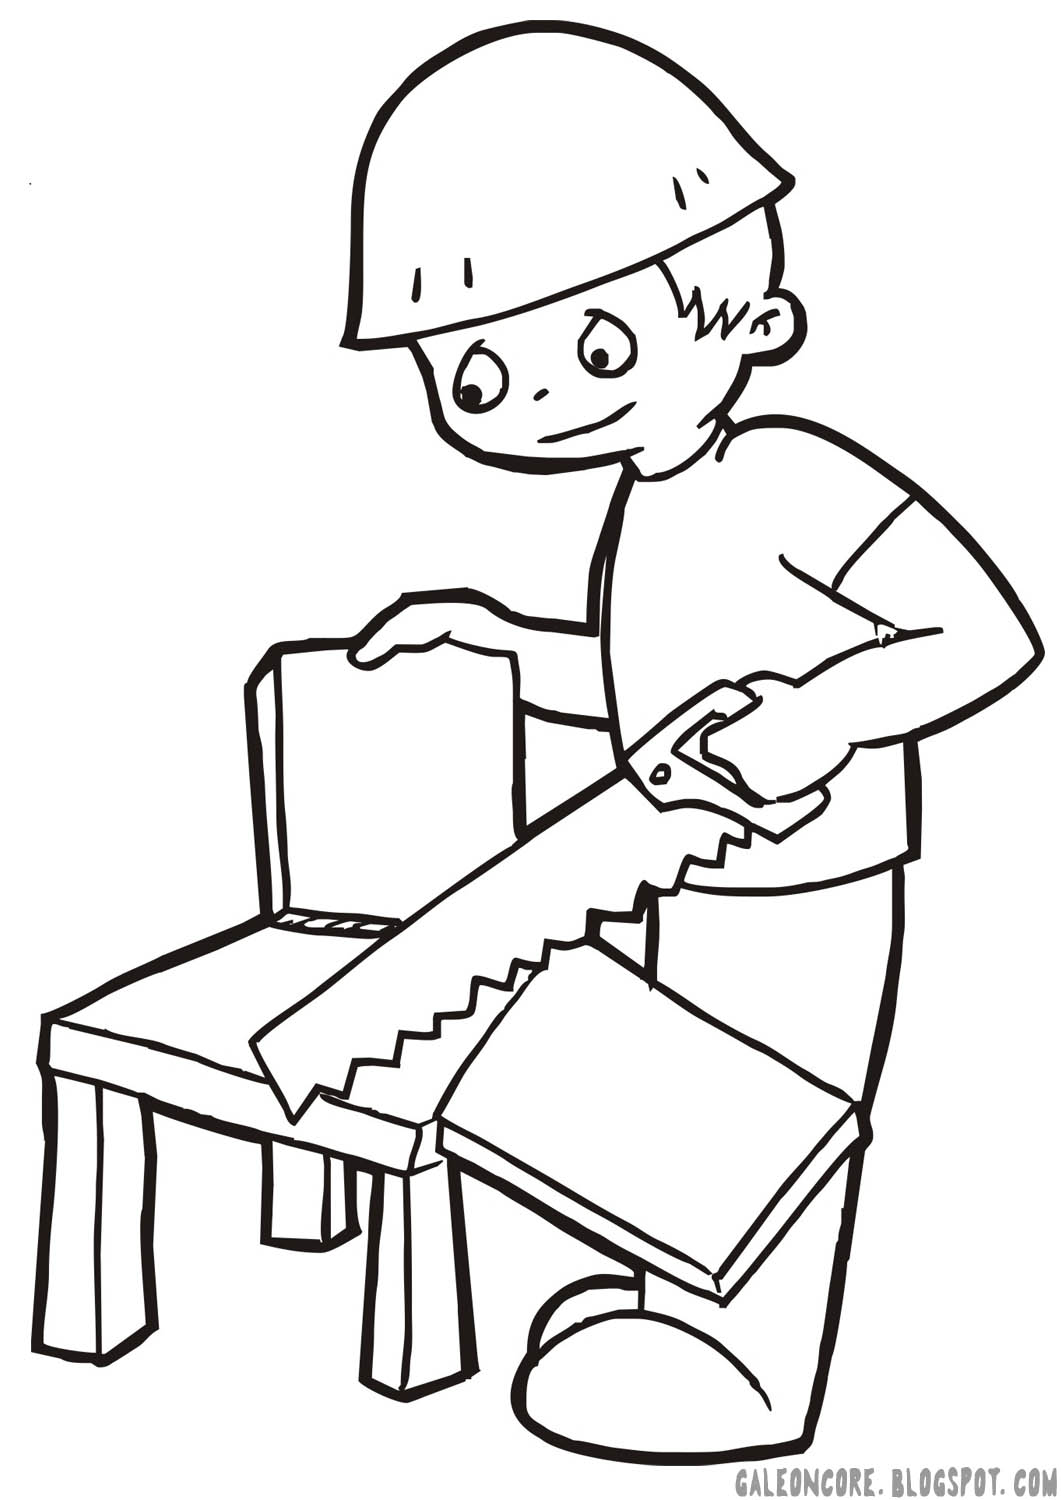 carpenter tools coloring pages - photo#7